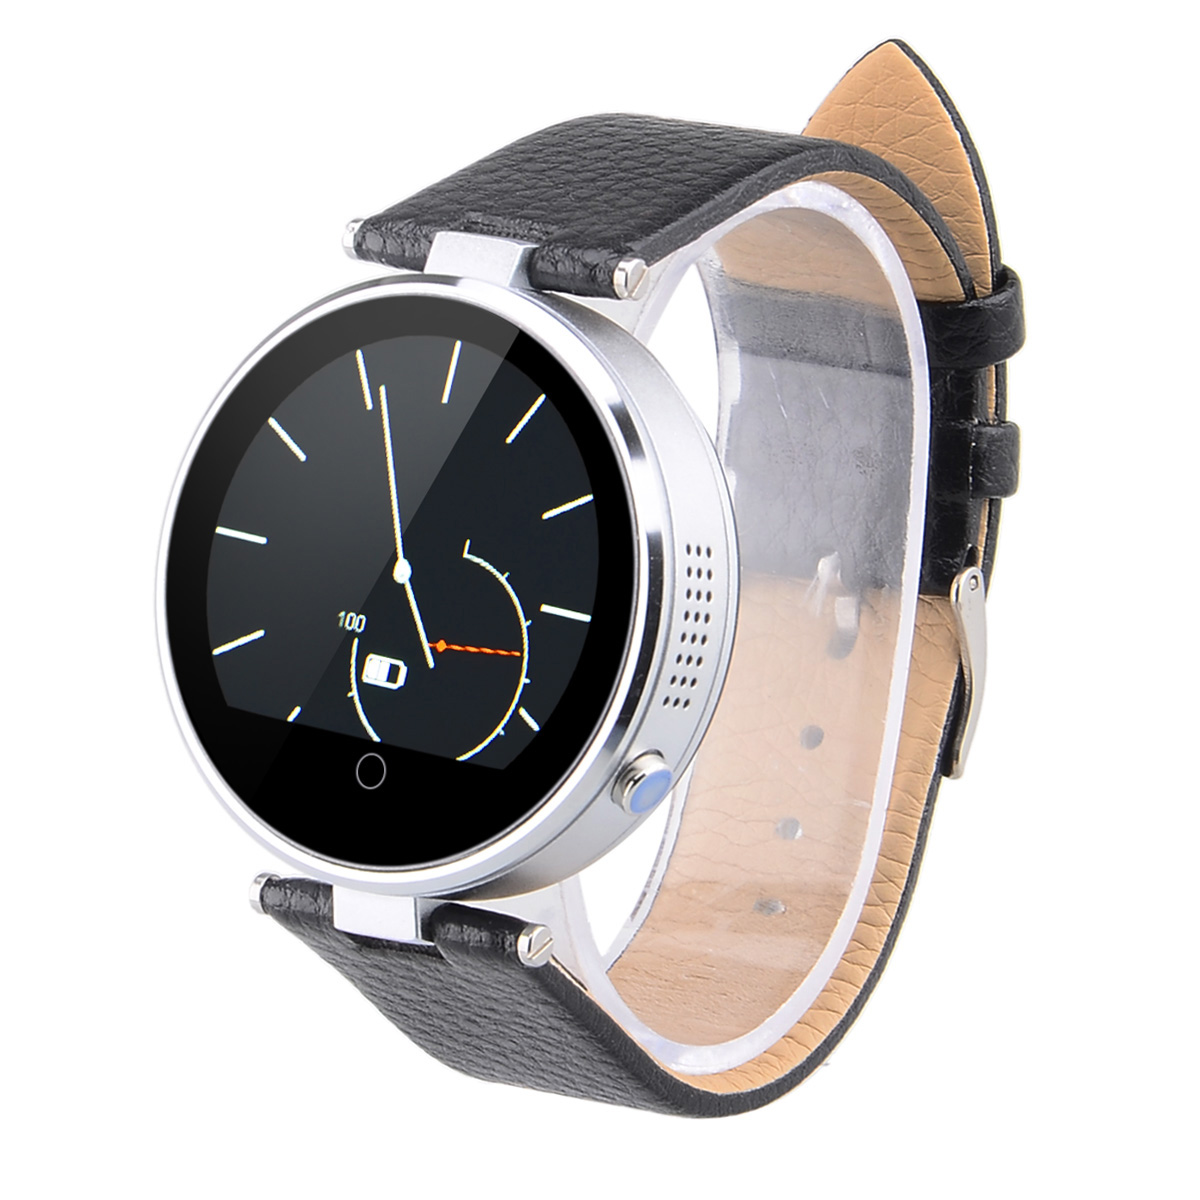 Original ZGPAX S365 Bluetooth Round Smart watch with Pedometer for ISO iPhone Android Phone Wearable Devices Clock Smartwatch